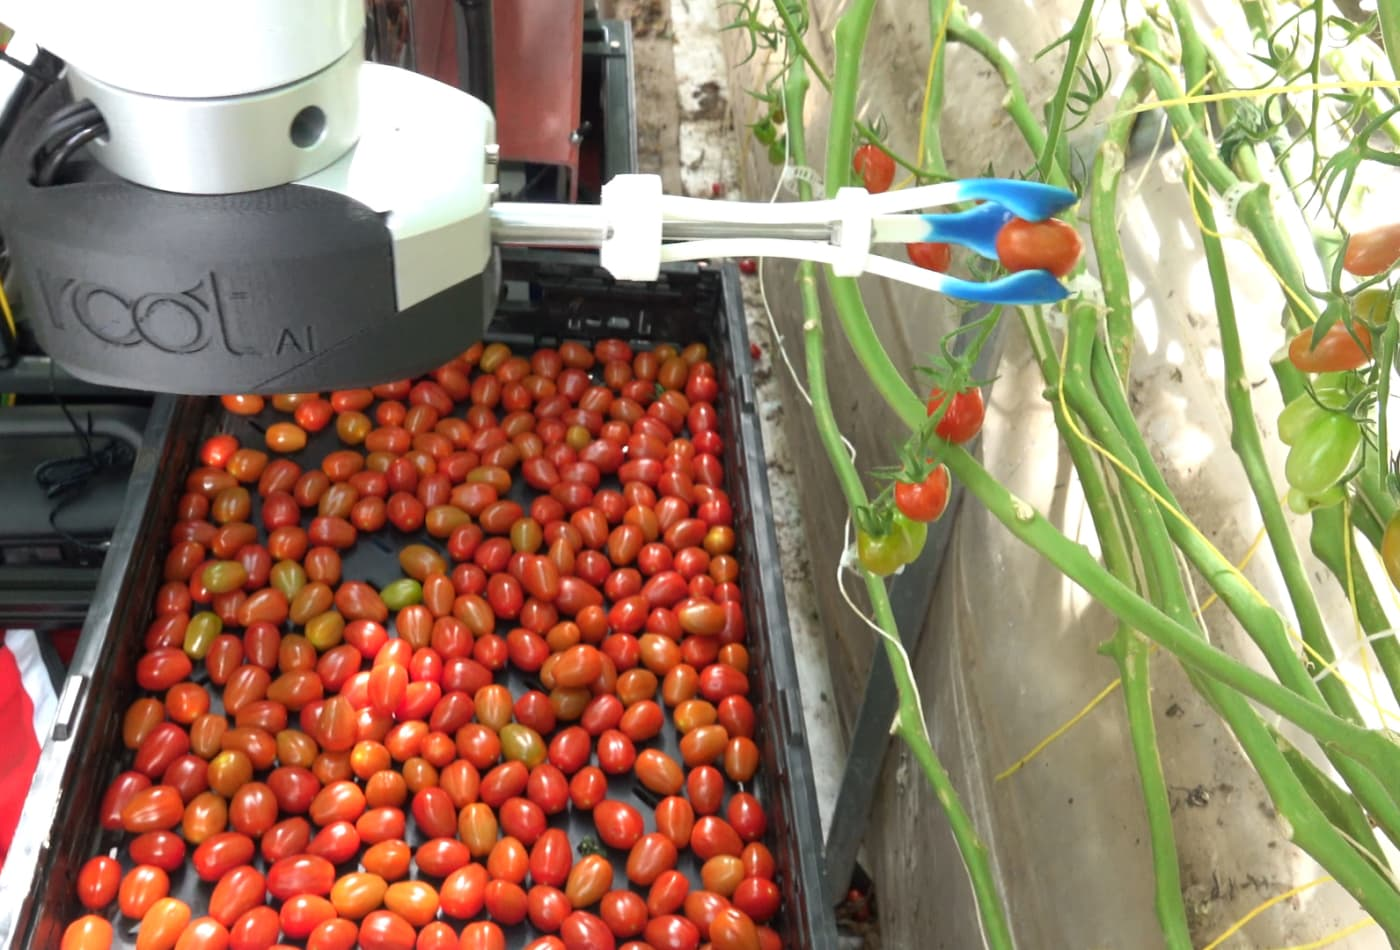 This robot can pick tomatoes without bruising them and detect ripeness better than humans